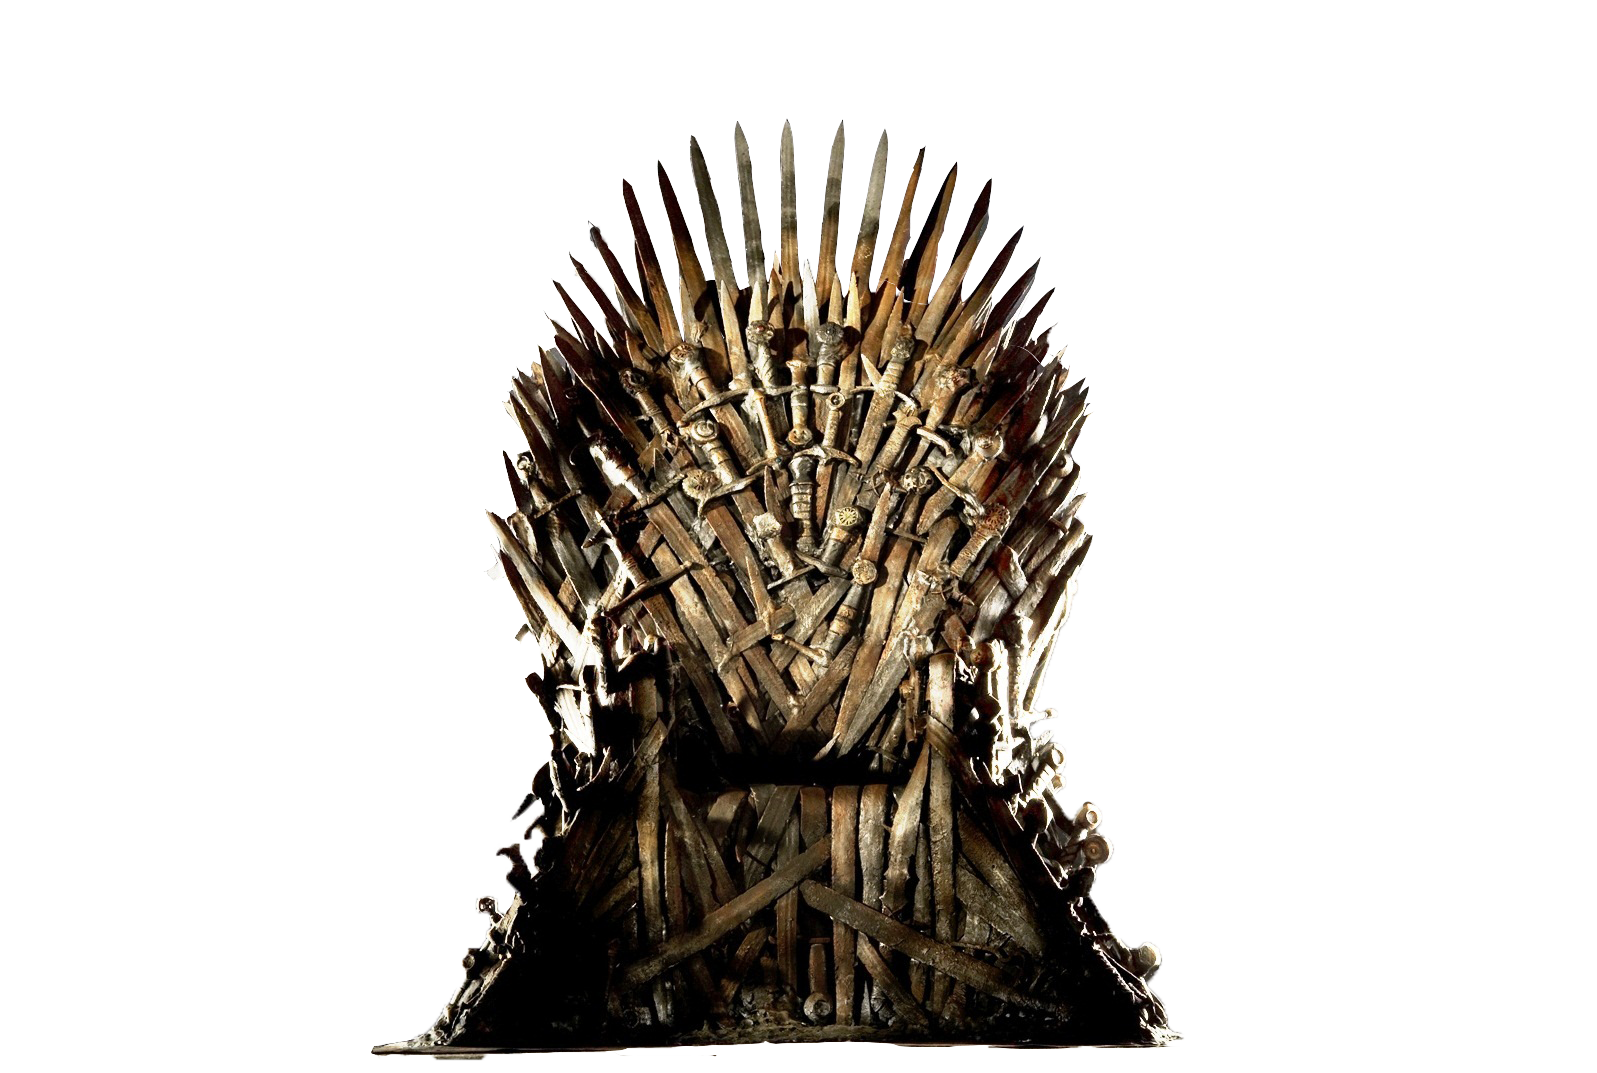 Game Of Thrones Iron Thrones Png - Game of Thrones ~ The Iron Throne PNG by wishfulrose on DeviantArt